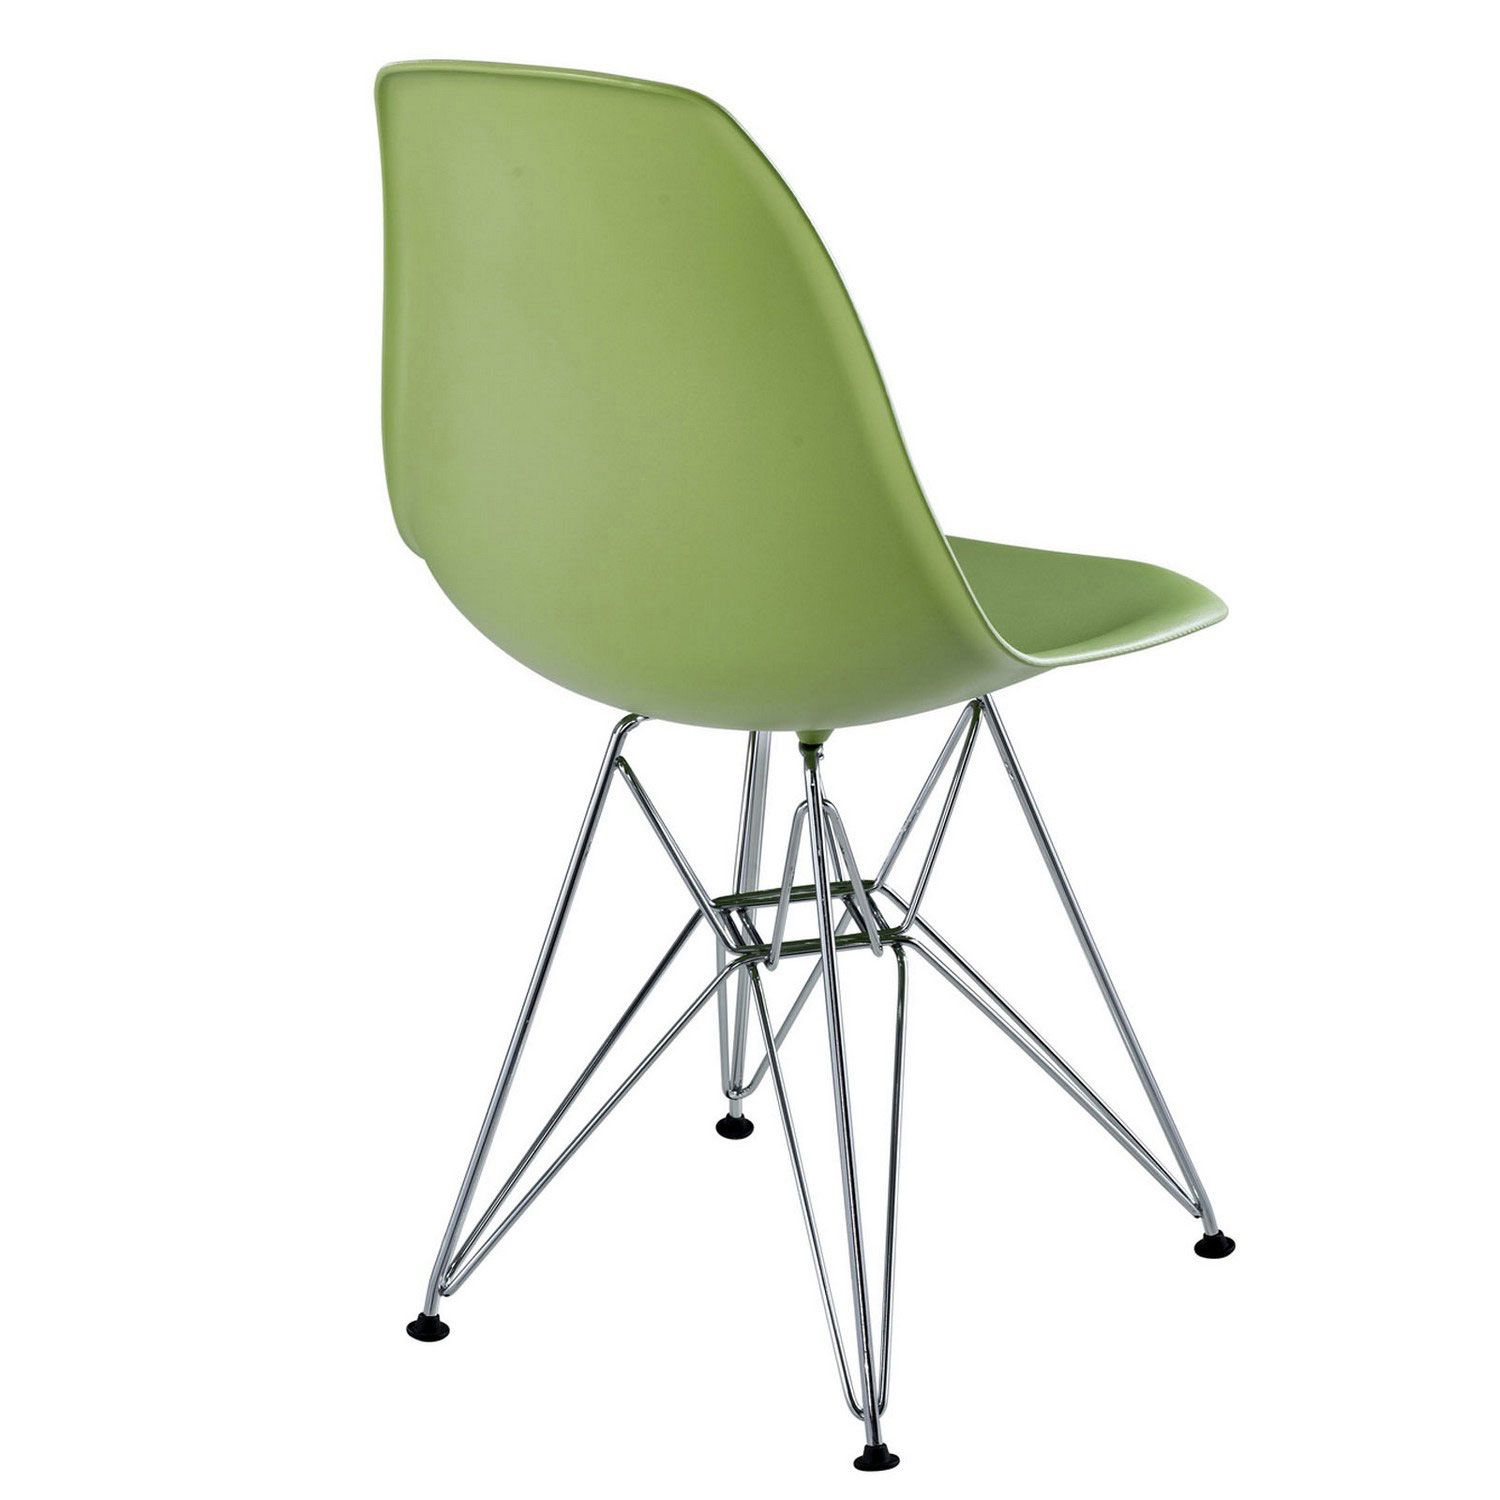 Modway Paris Dining Side Chair - Green